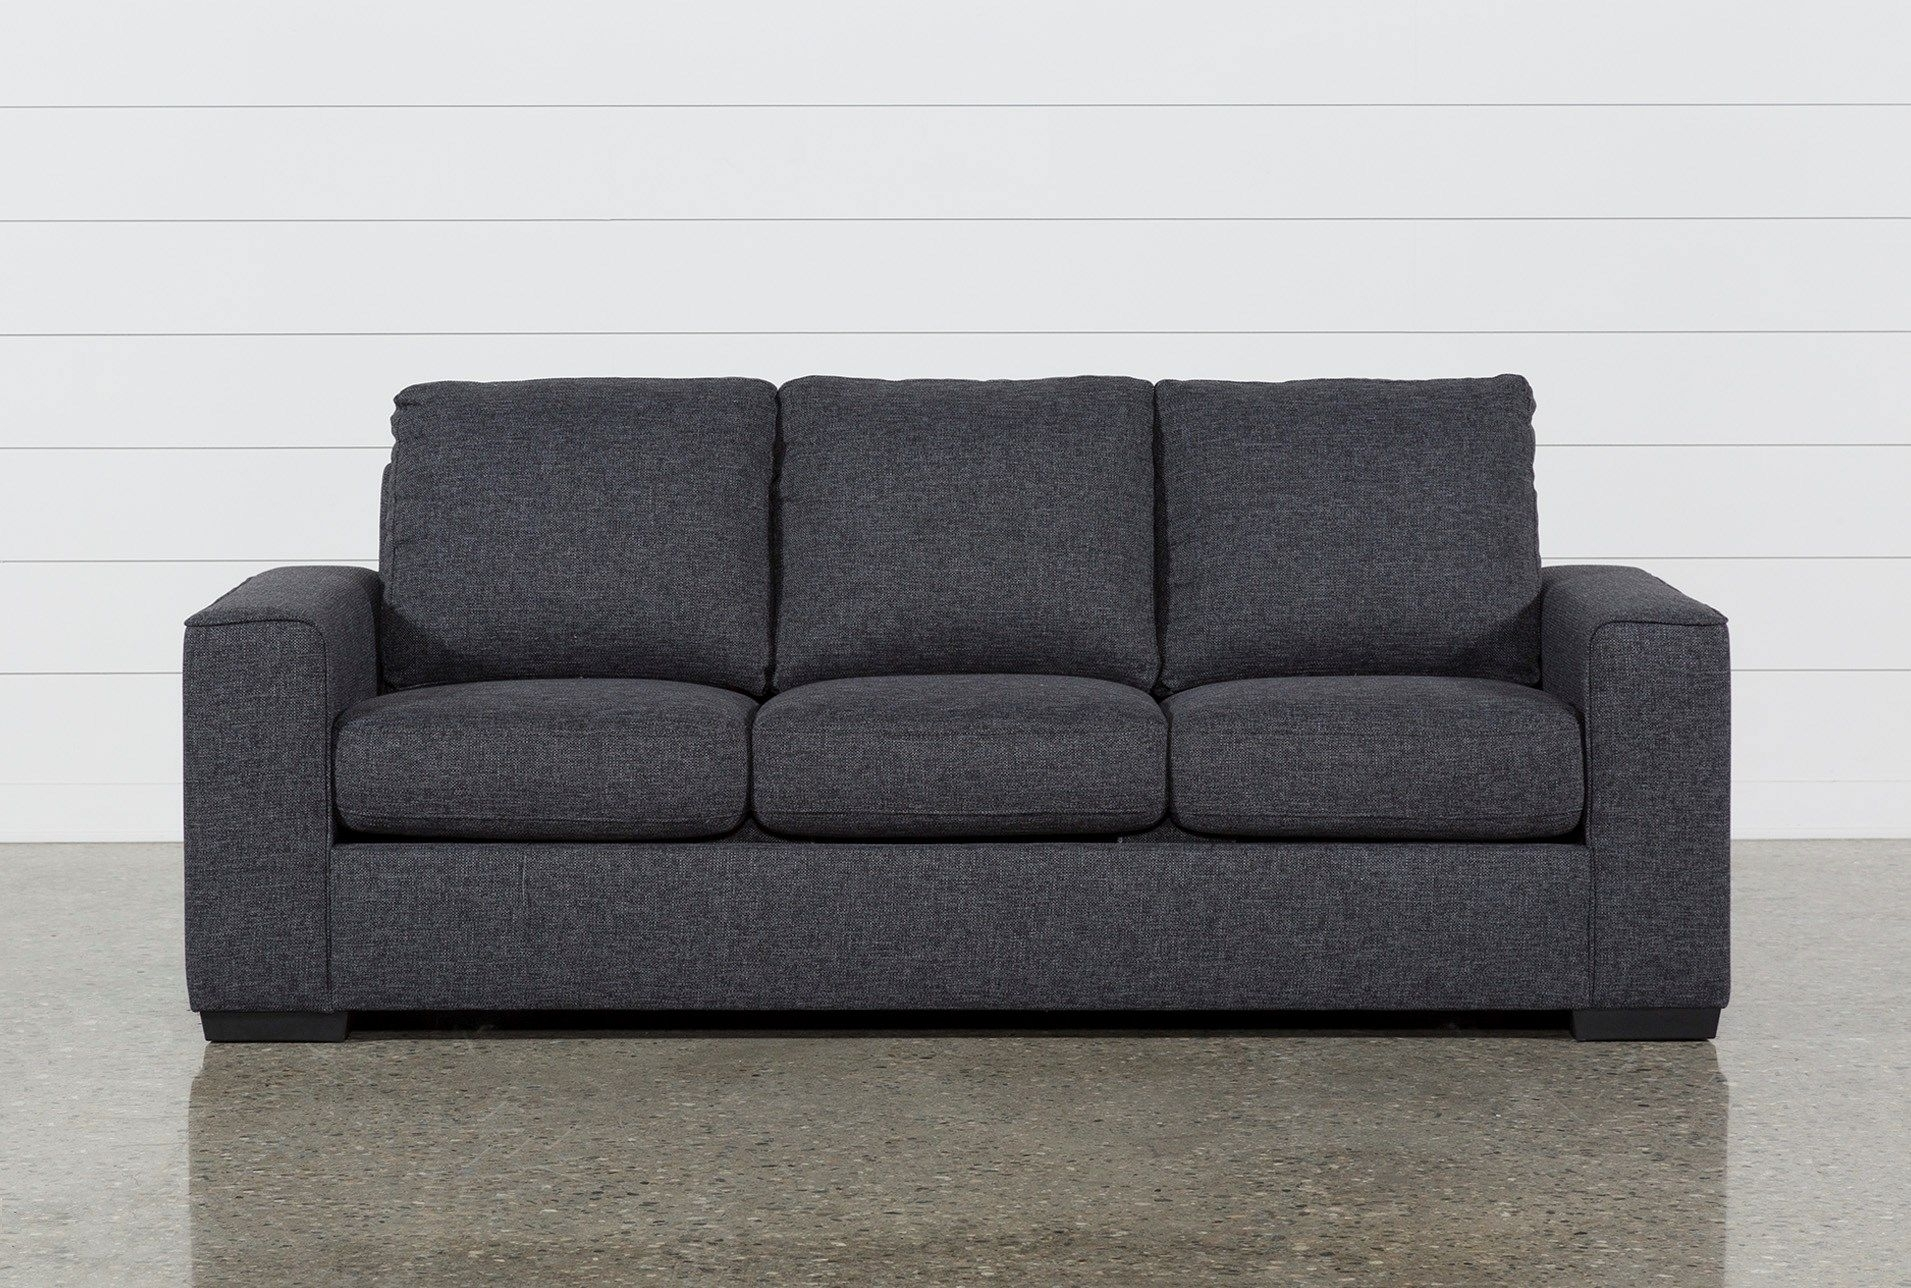 Lucy Dark Grey 2 Piece Sectional W/raf Chaise With Mcdade Graphite 2 Piece Sectionals With Laf Chaise (View 19 of 25)